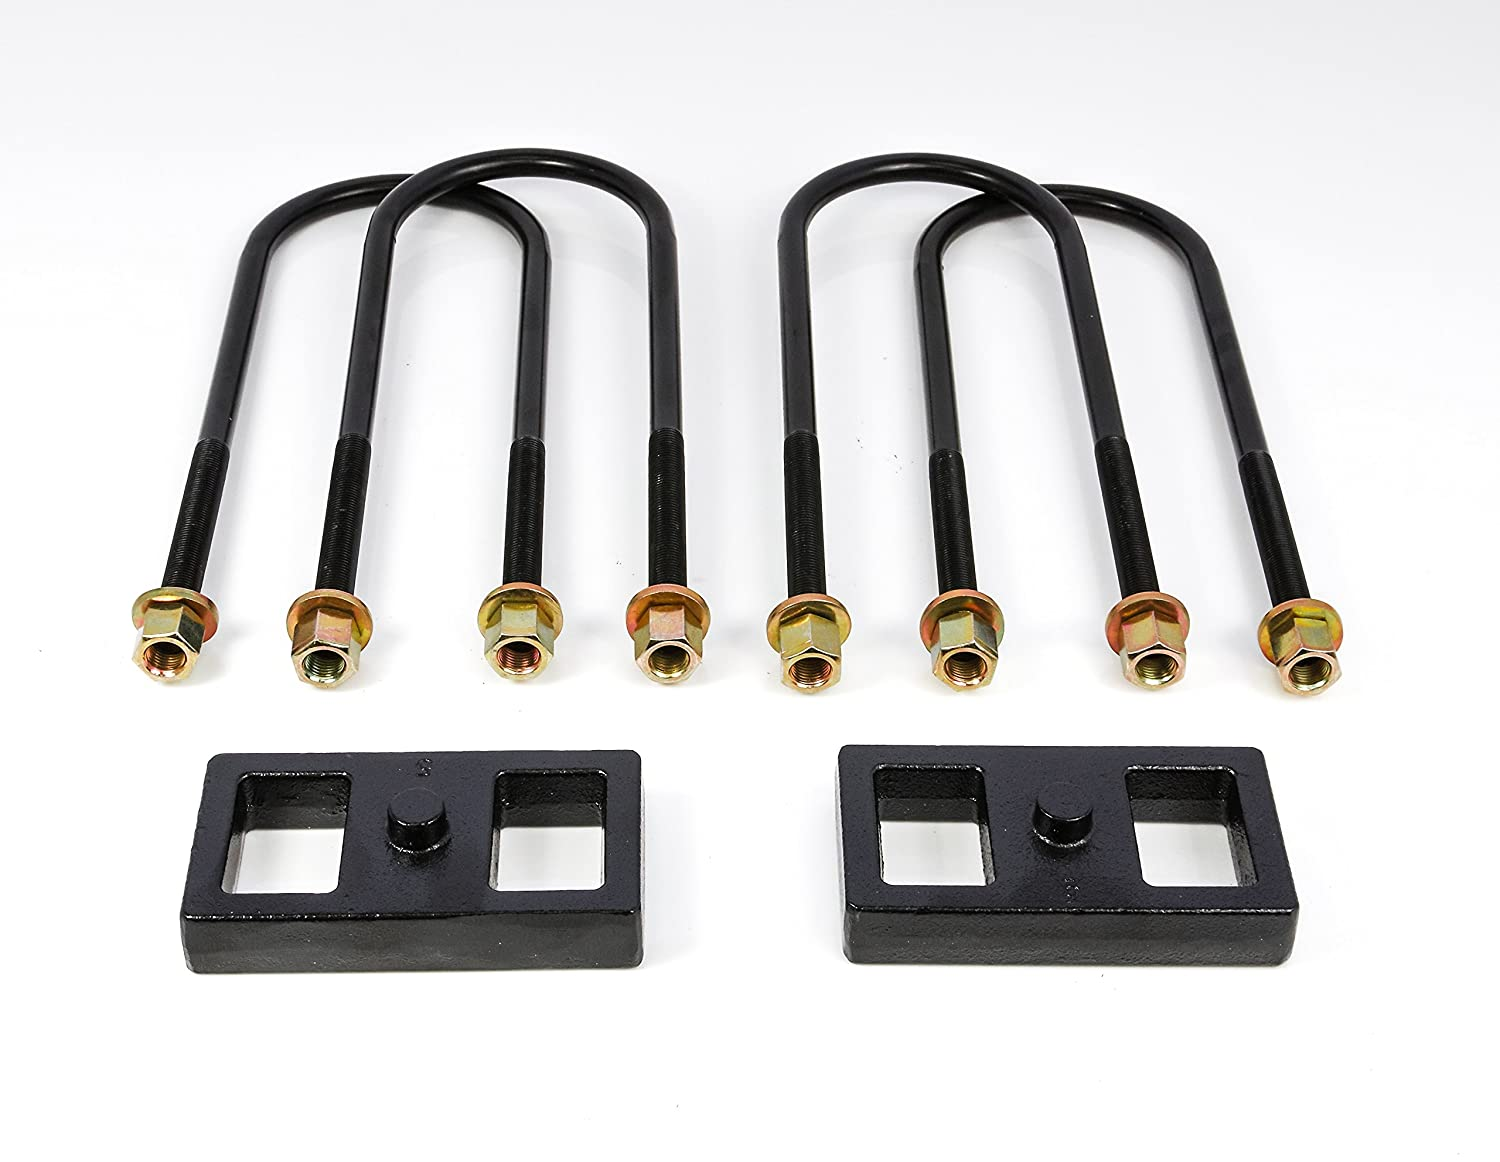 Rugged Off Road 2-2011 1 Rear Block Kit for Dodge RAM 2500//3500 2//4WD Rugged Lift